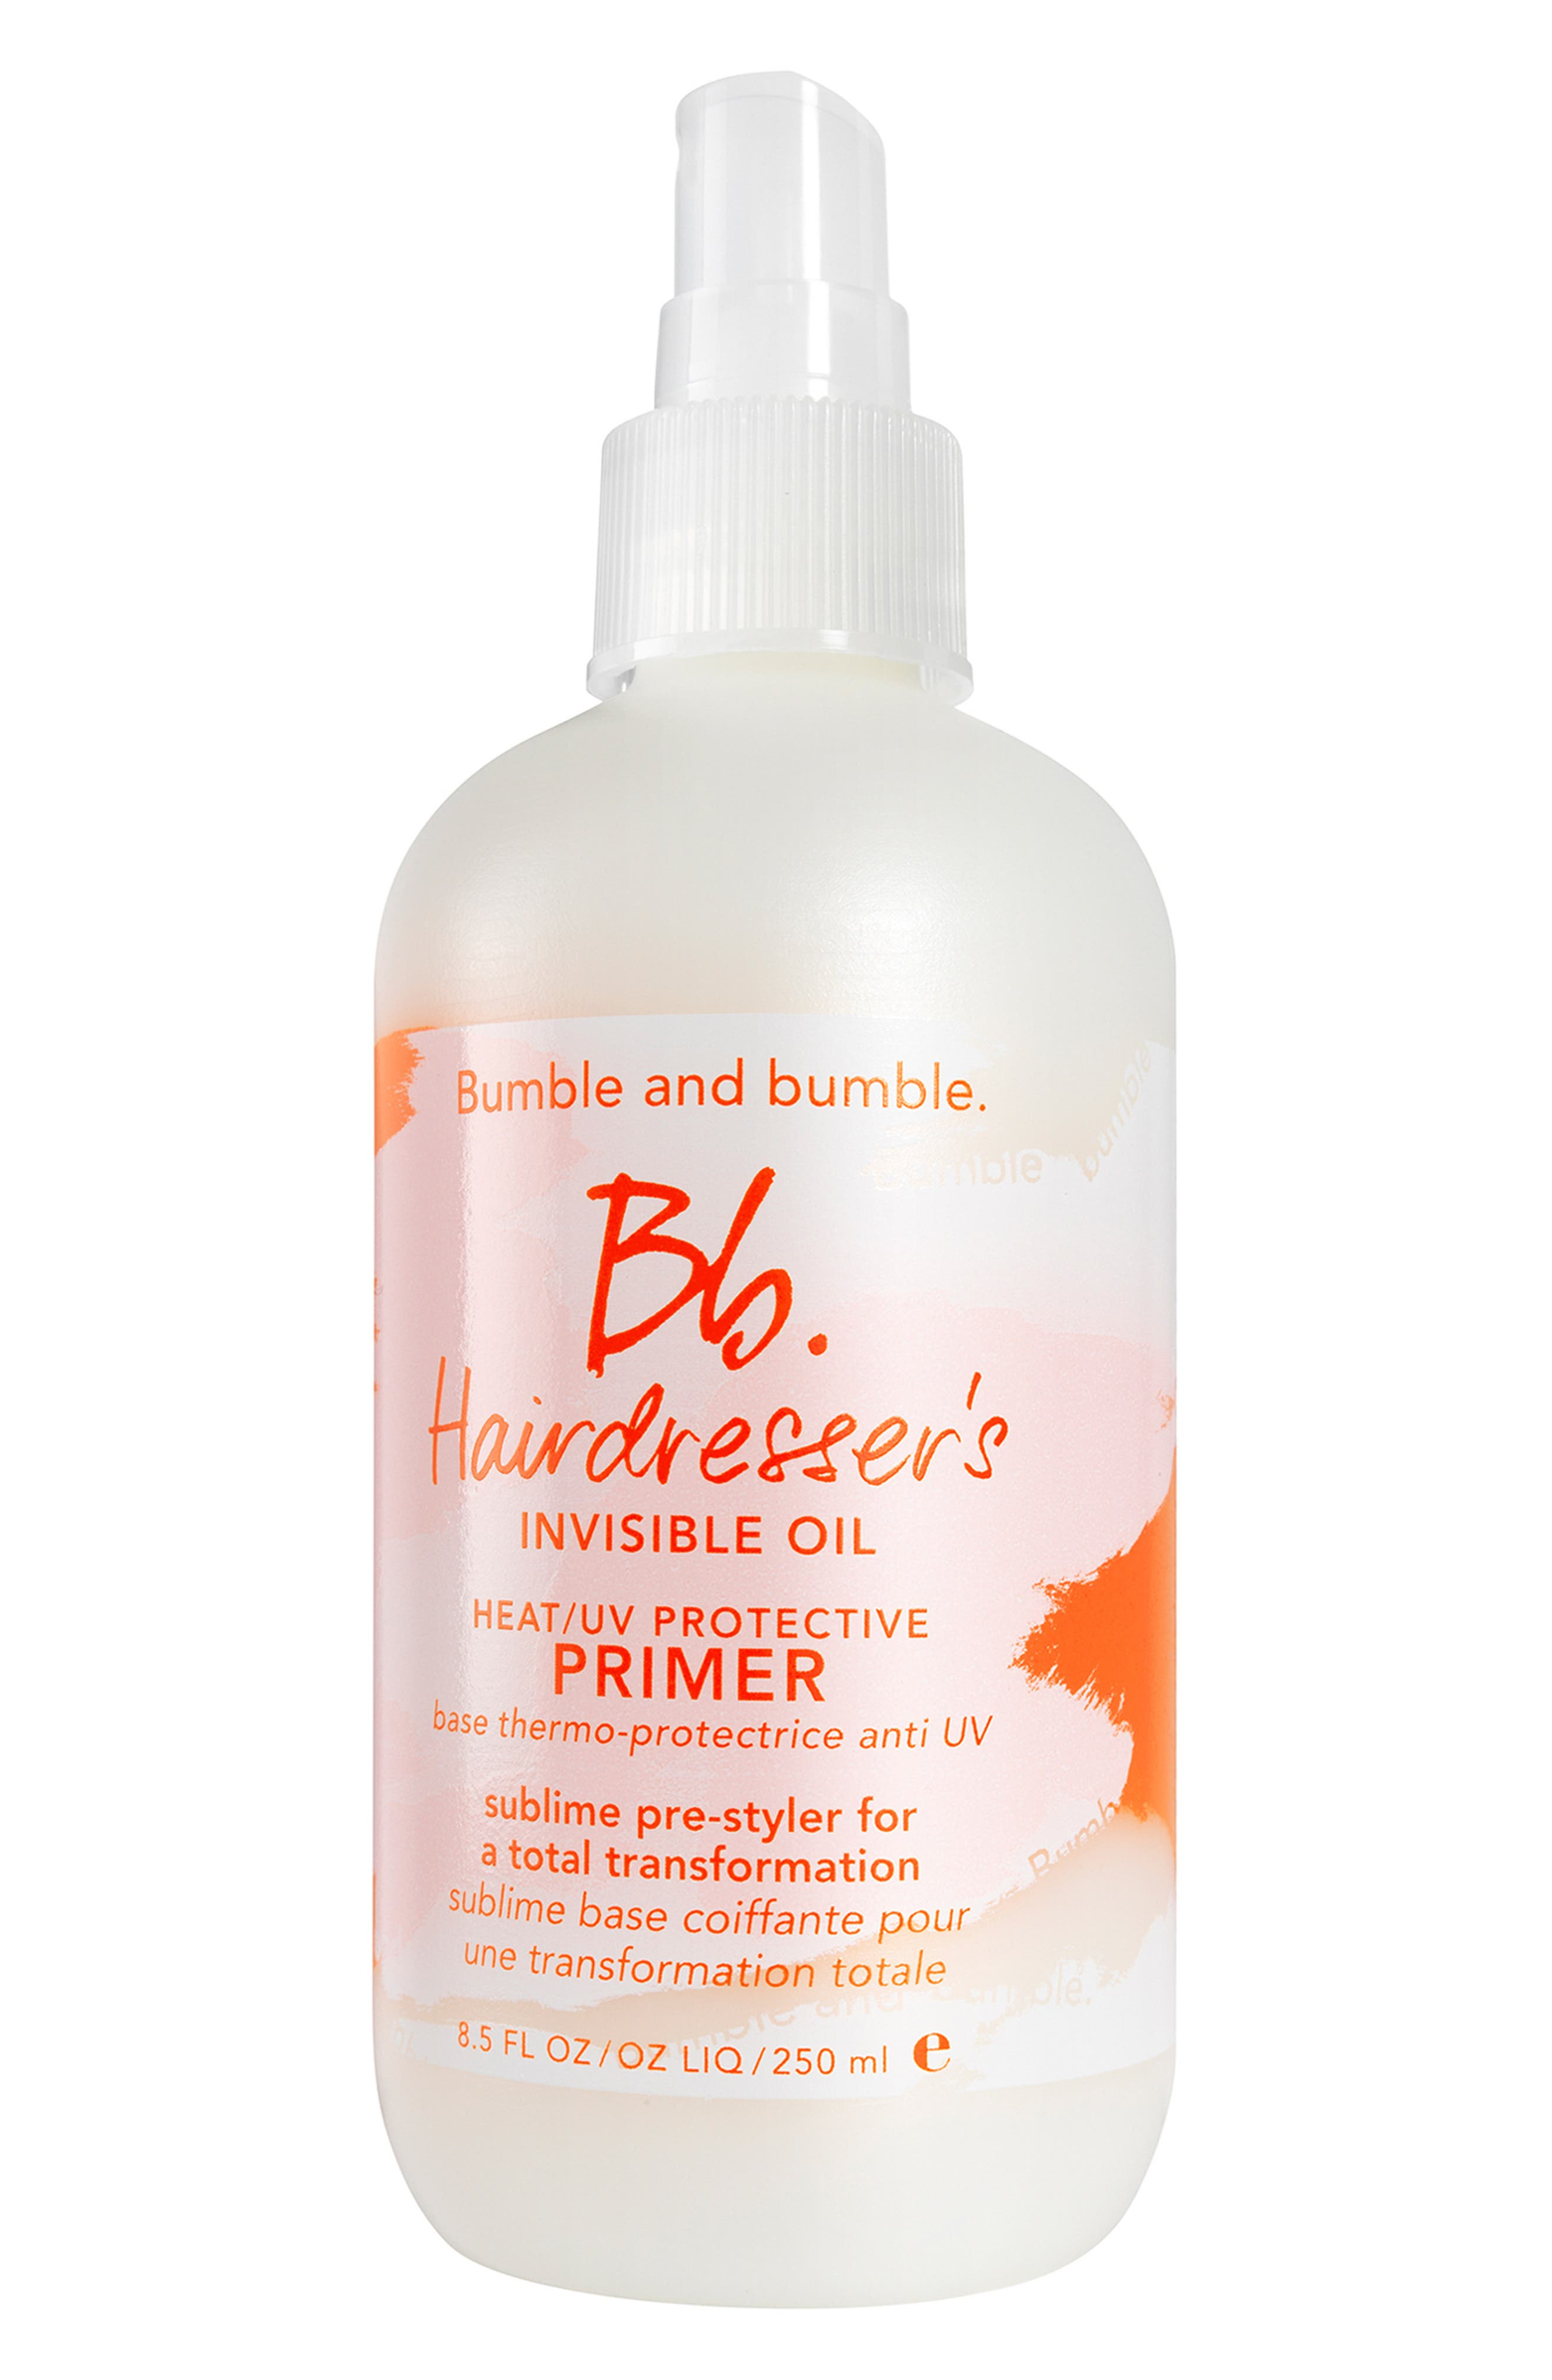 Bumble and bumble Hairdresser's Invisible Oil Heat/UV Protective Primer, Main, color, NO COLOR